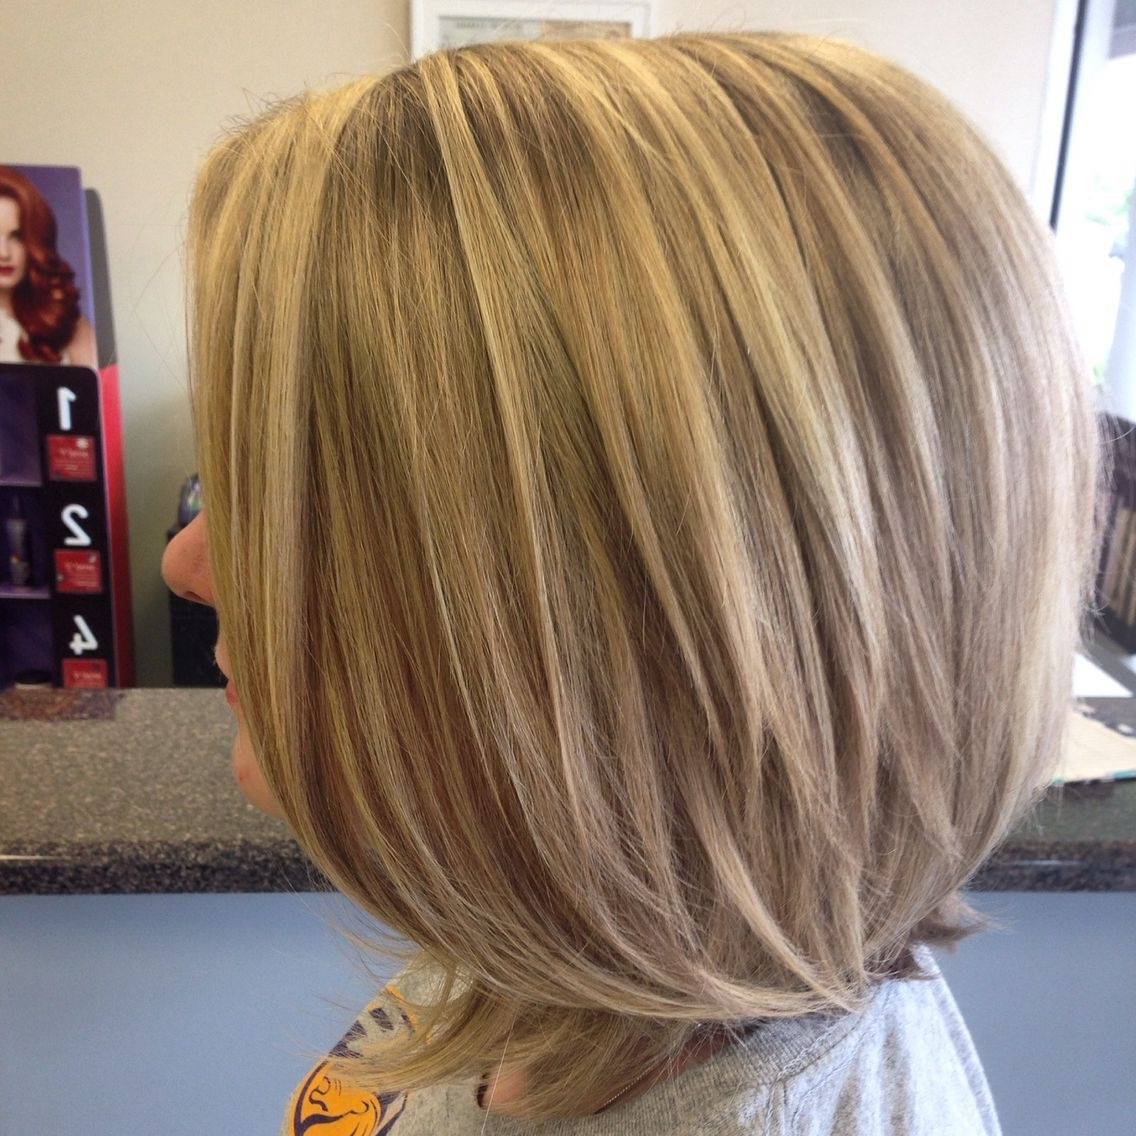 Most Popular Long Bob Blonde Hairstyles With Babylights In Dark Blonde Hair With Highlights. Long Bob Haircut (View 12 of 20)